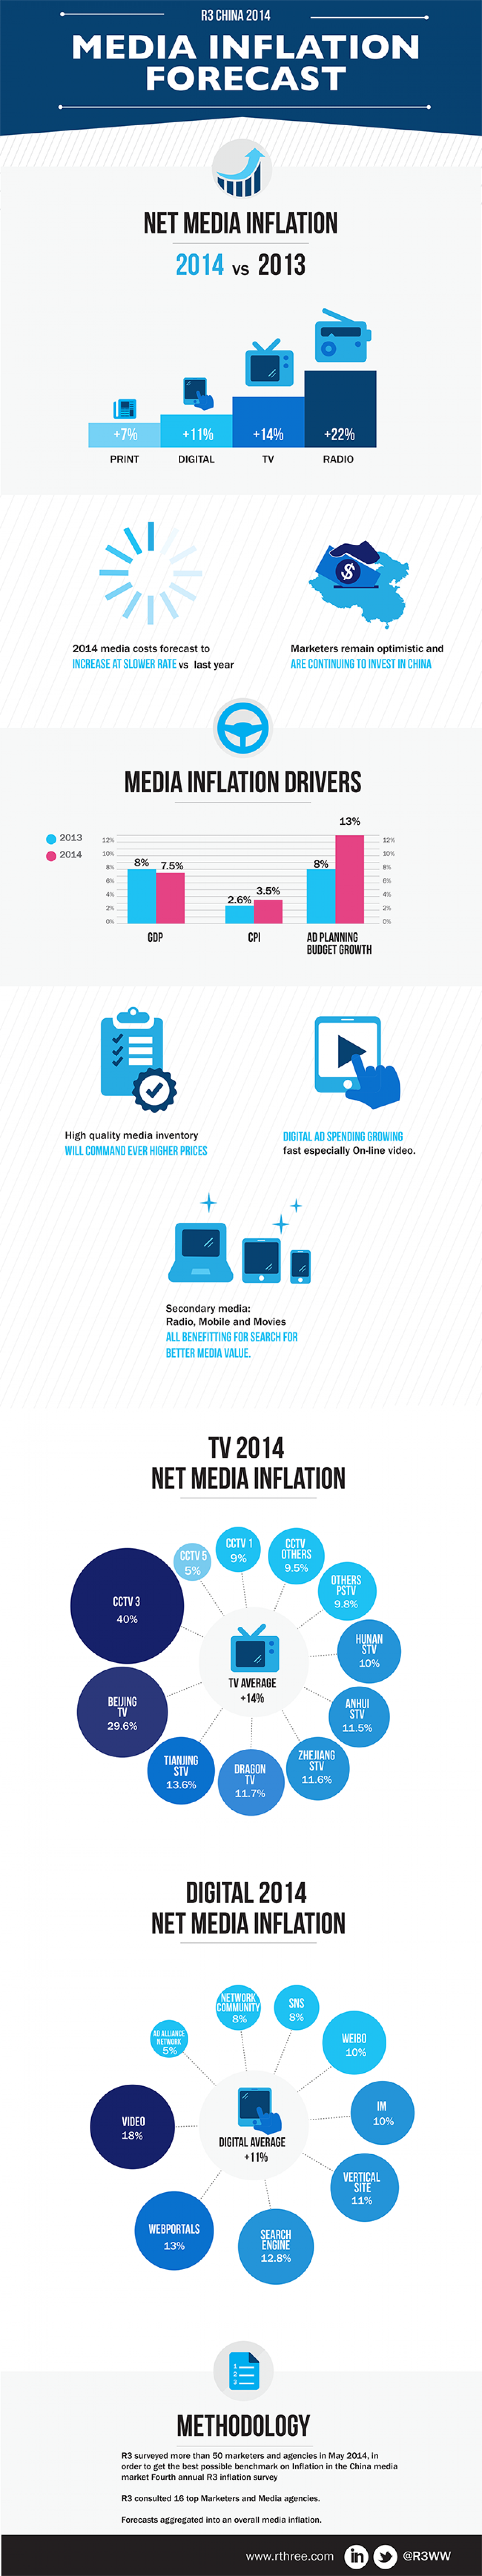 Media Inflation Forecast  Infographic